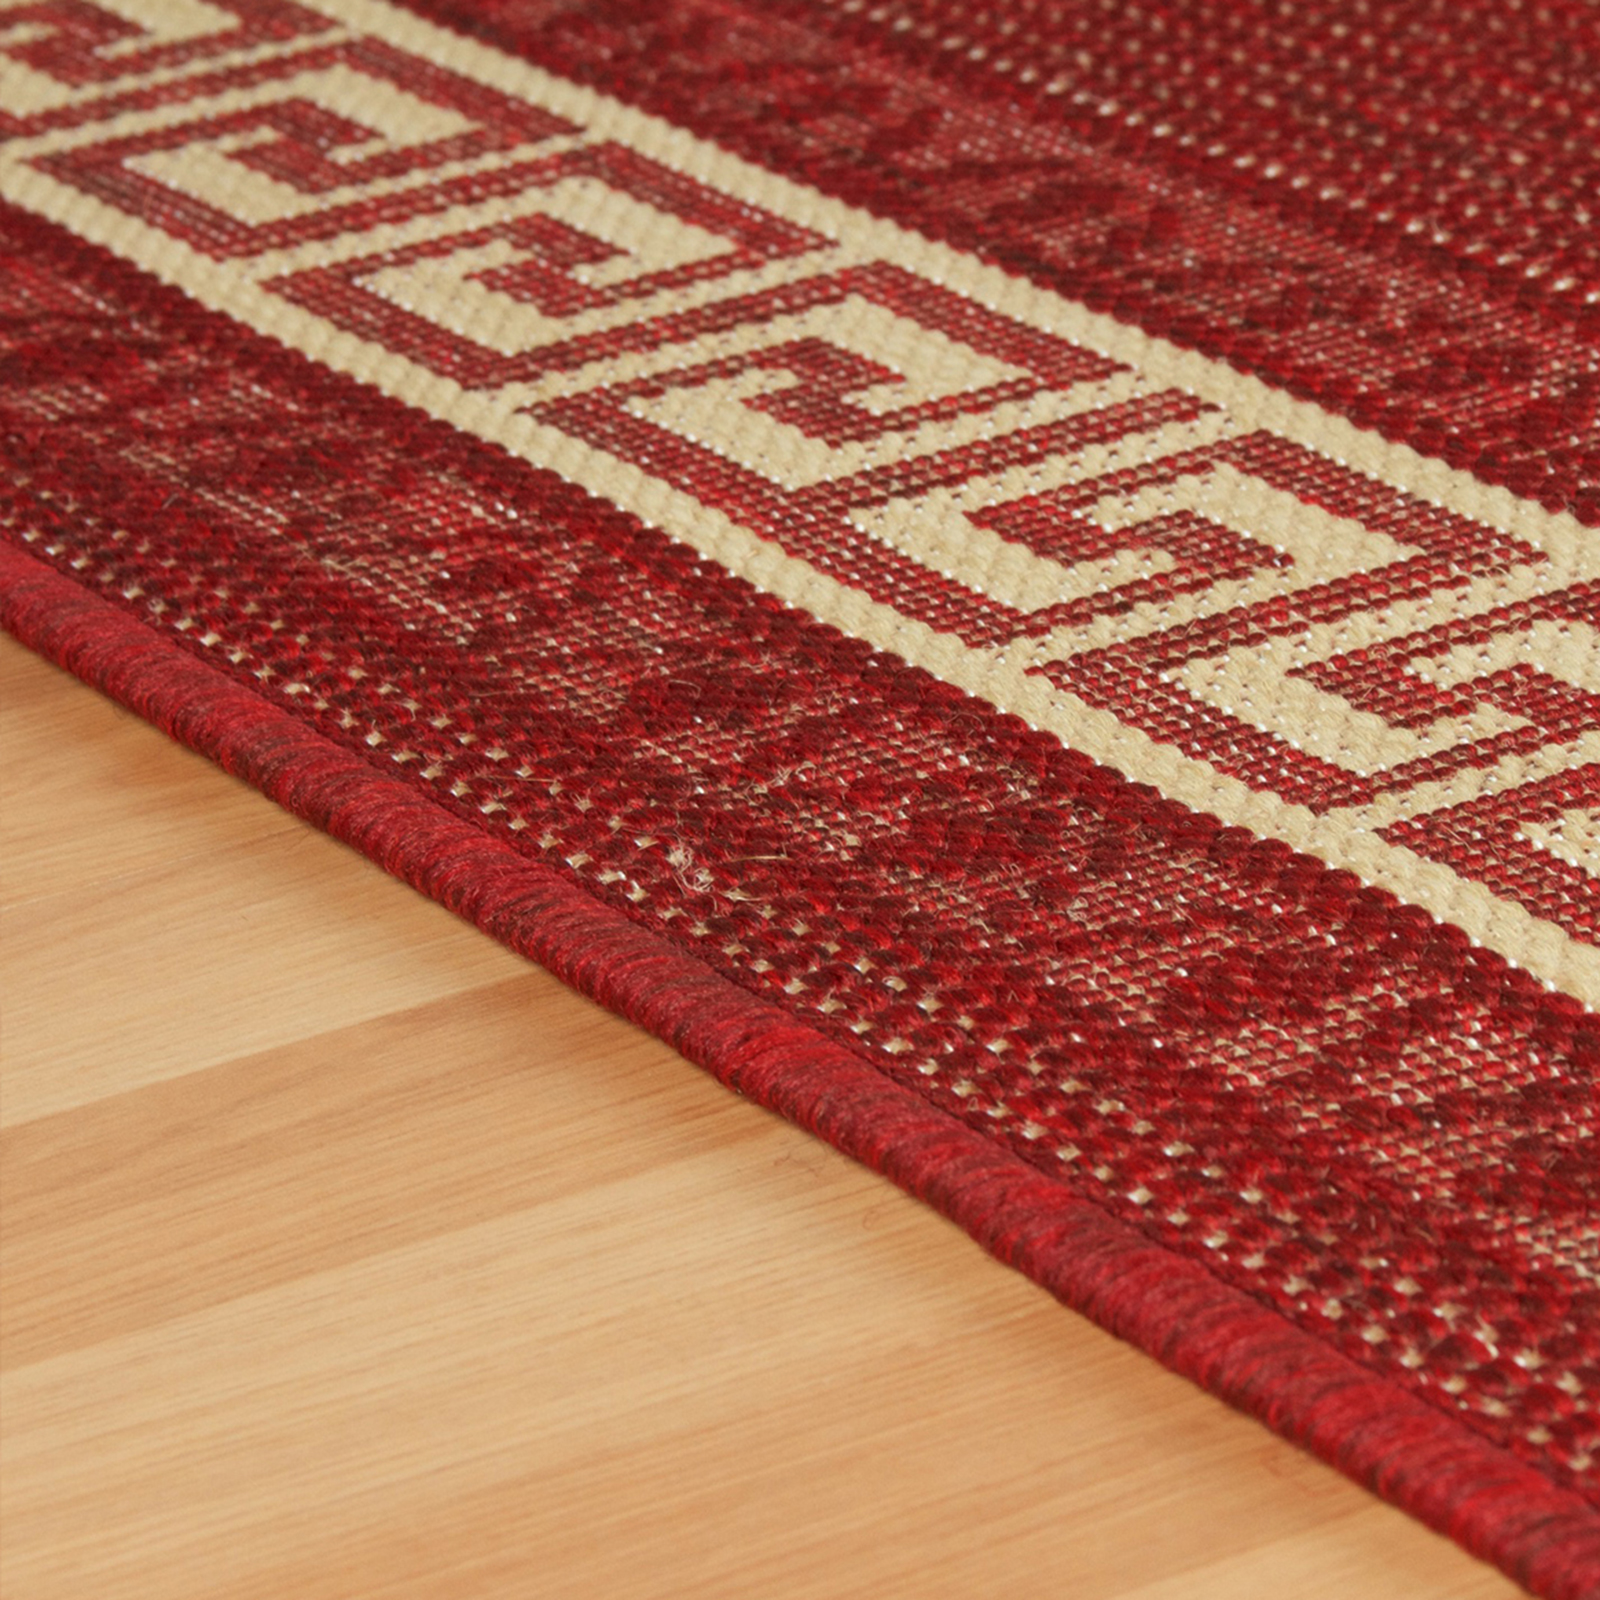 Greek-Key-Flatweave-Red-Detail-(1).jpg